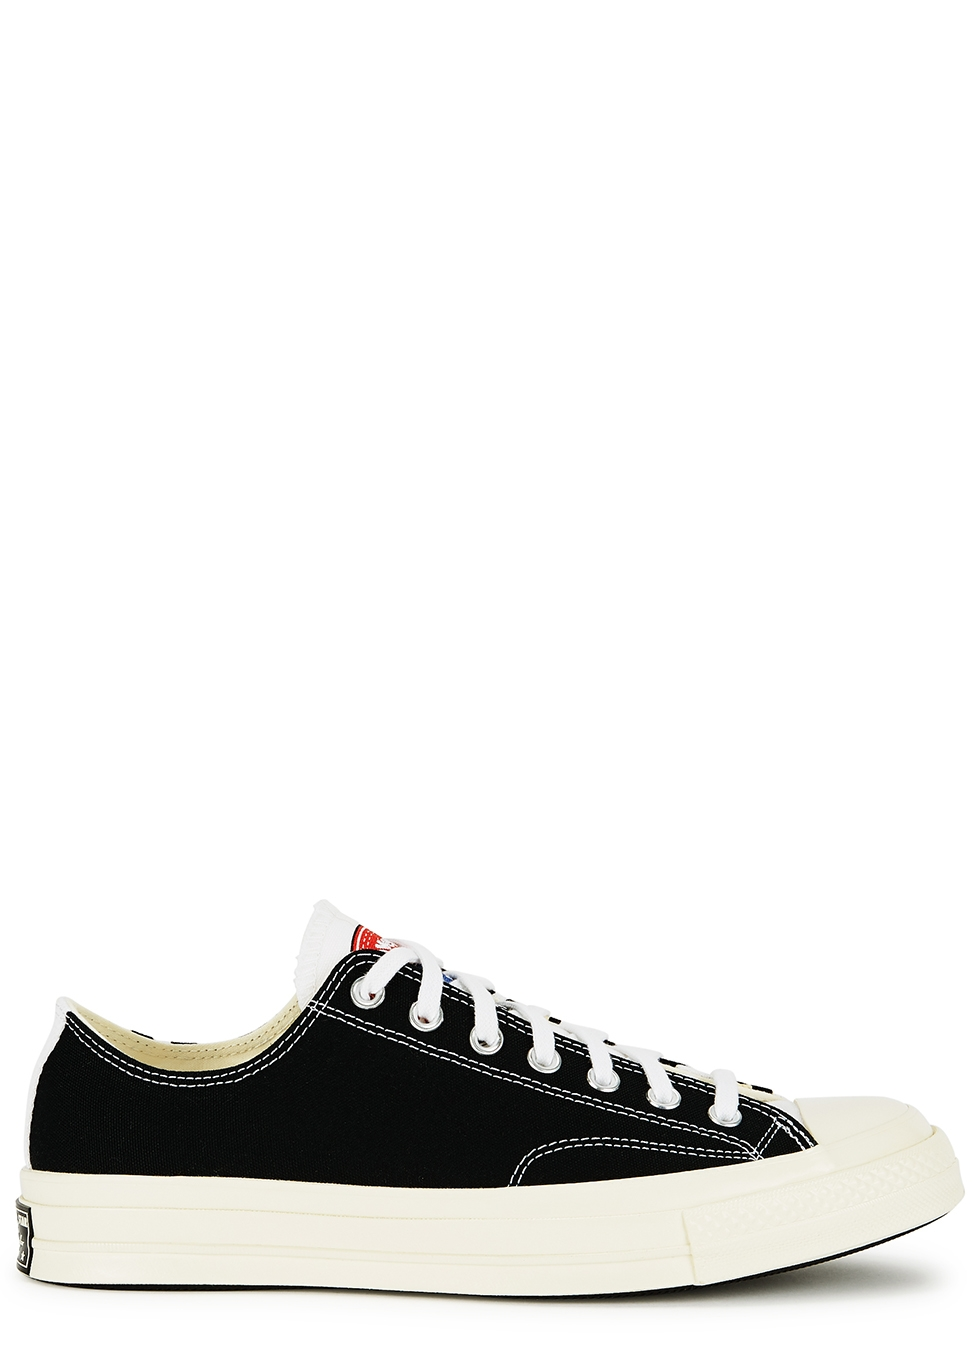 Chuck 70 panelled canvas sneakers